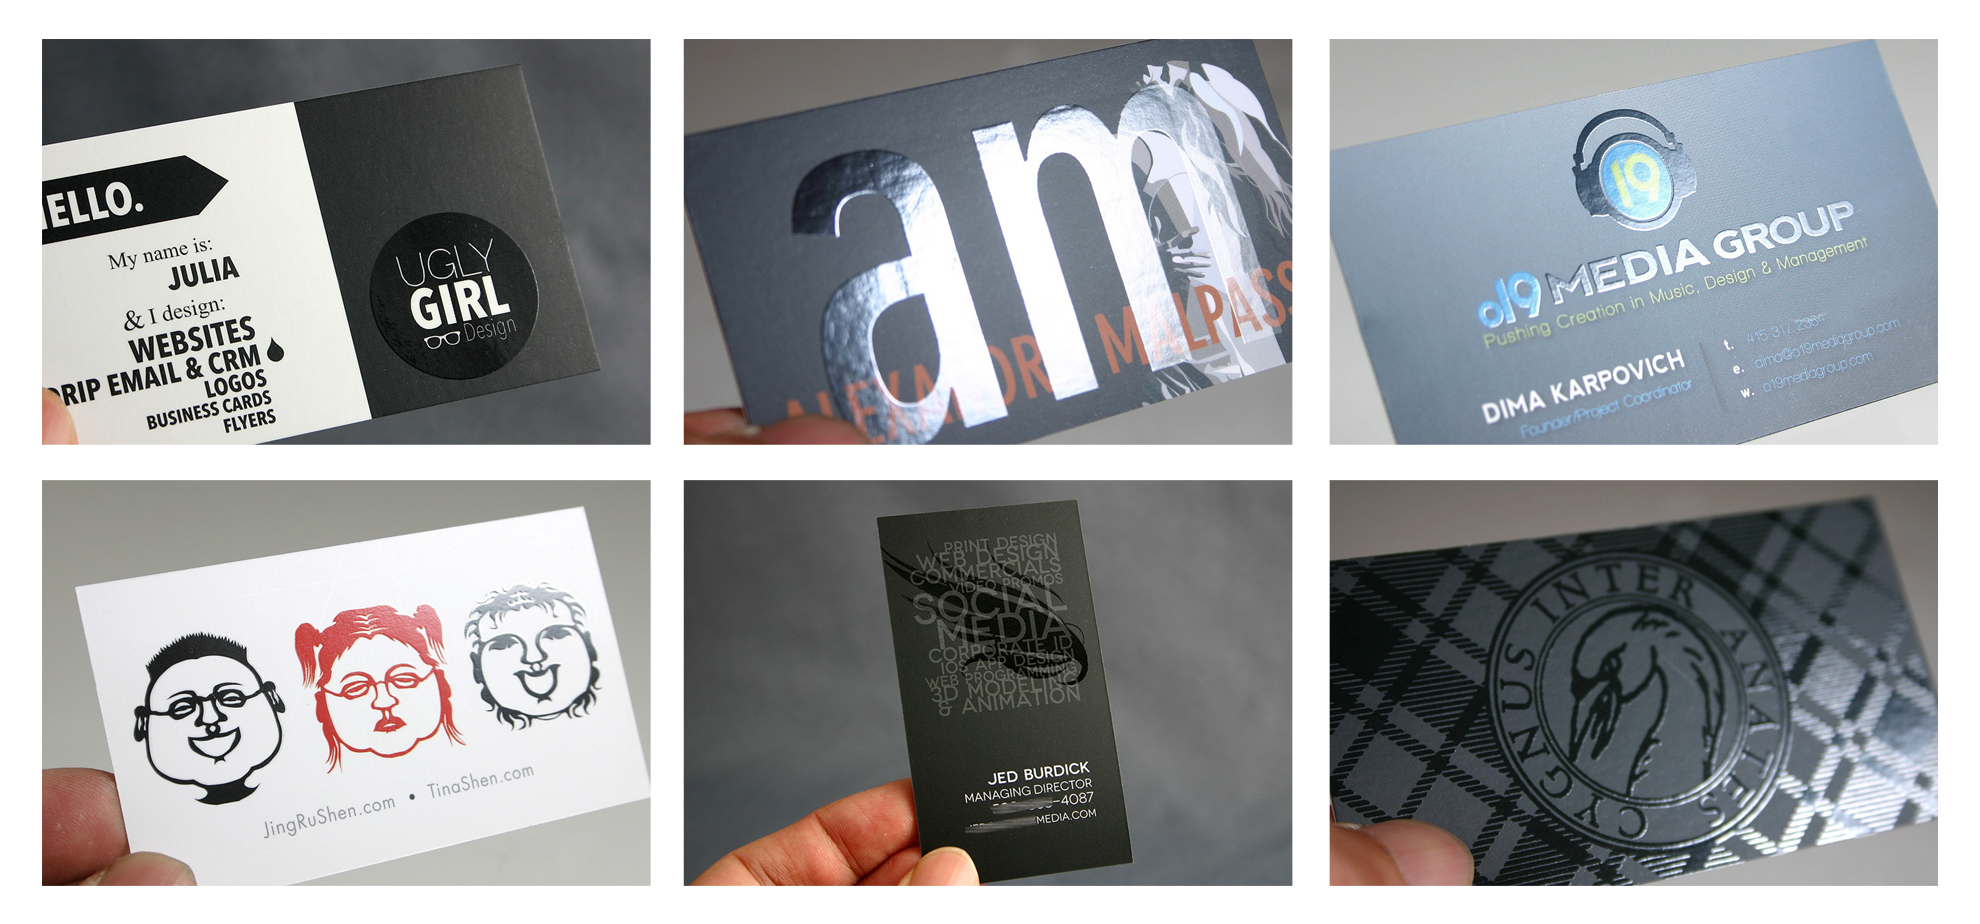 MorningPrint Product Feature: Spot UV | MorningPrint Blog